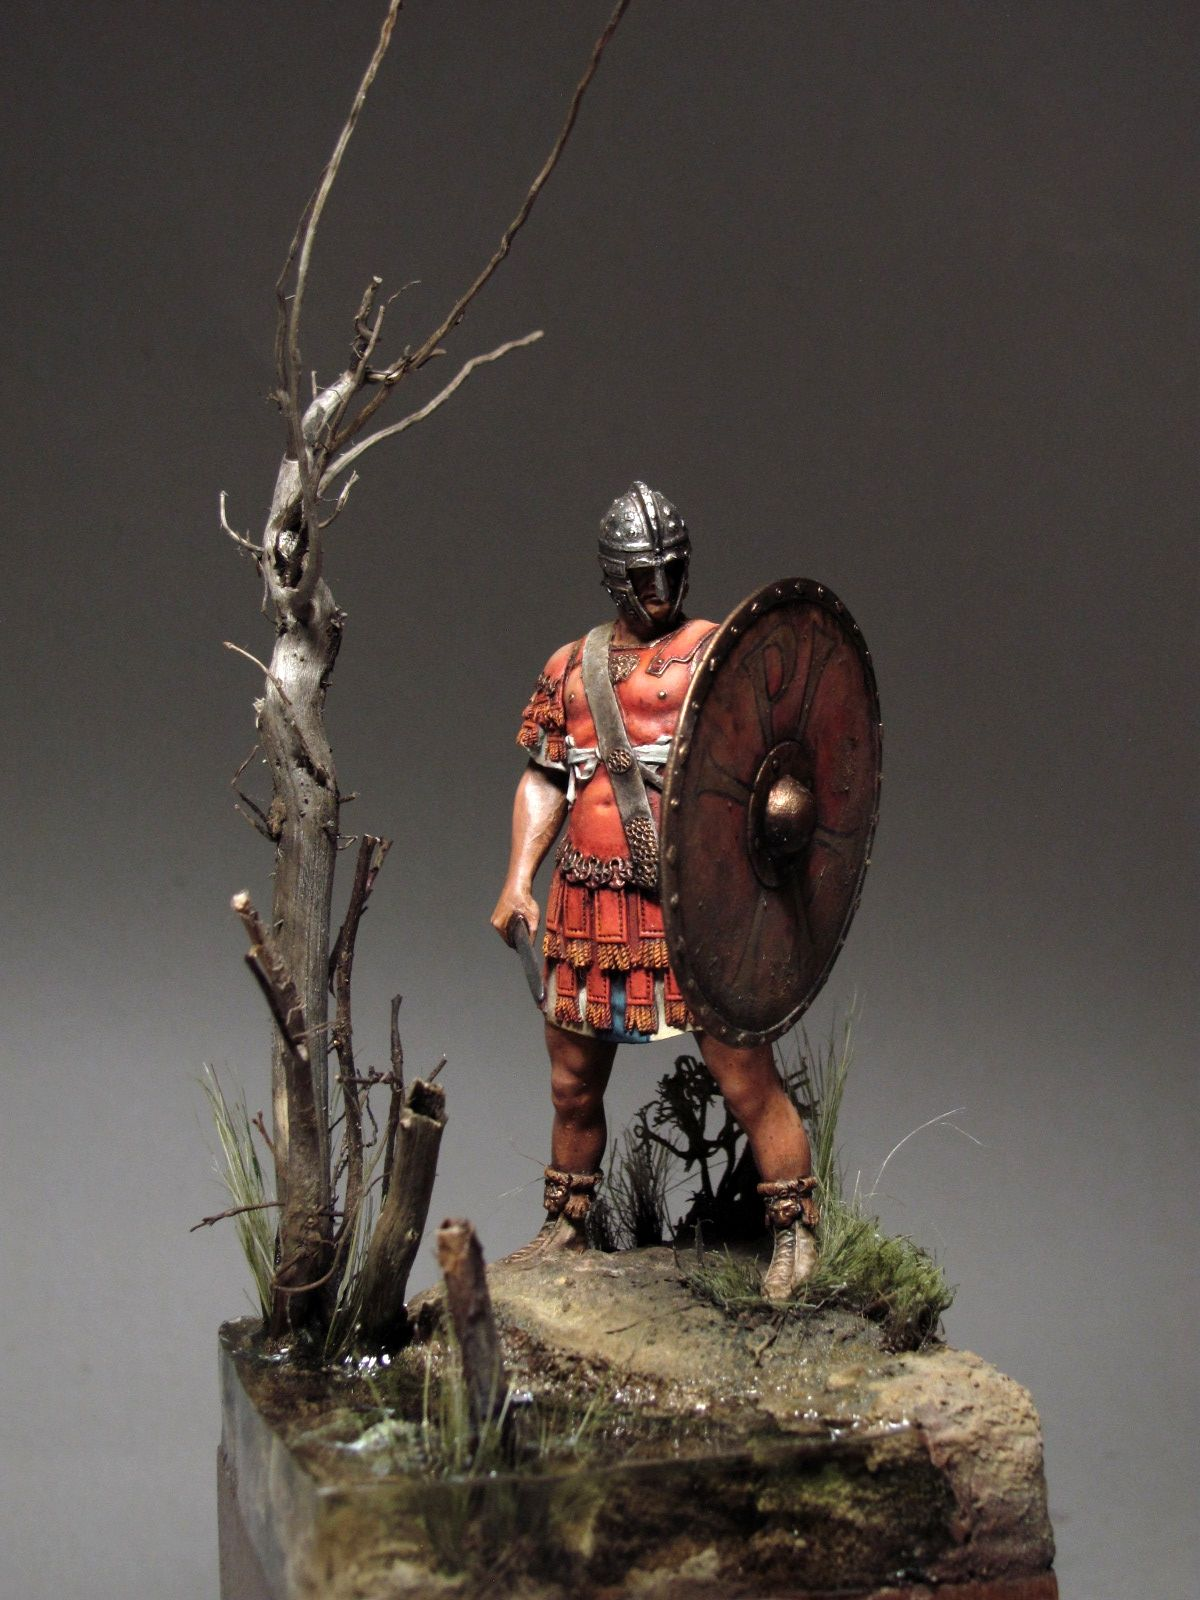 Stunning Roman toy soldier with shield. Great details in the diorama. Painted by Hardrada.